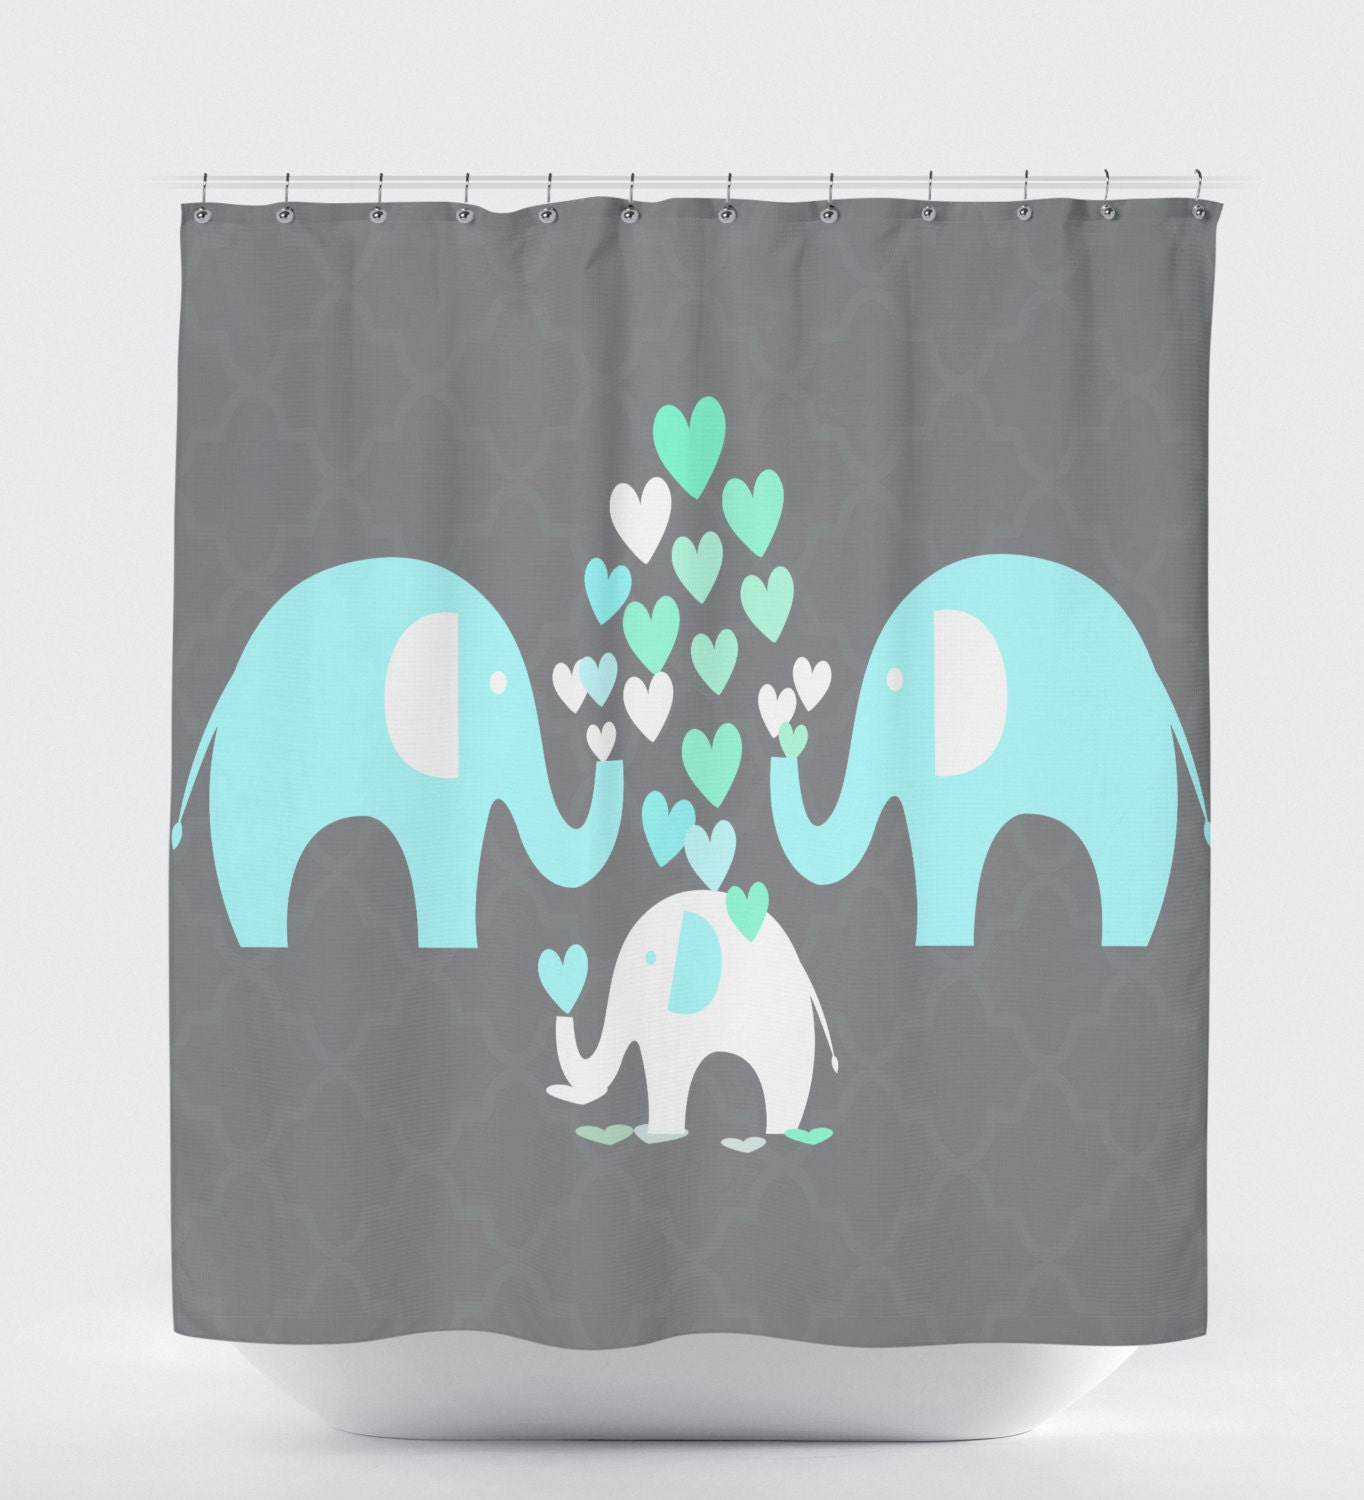 Bathroom Accessories Etsy elephant shower curtain kids bathroom accessories elephant